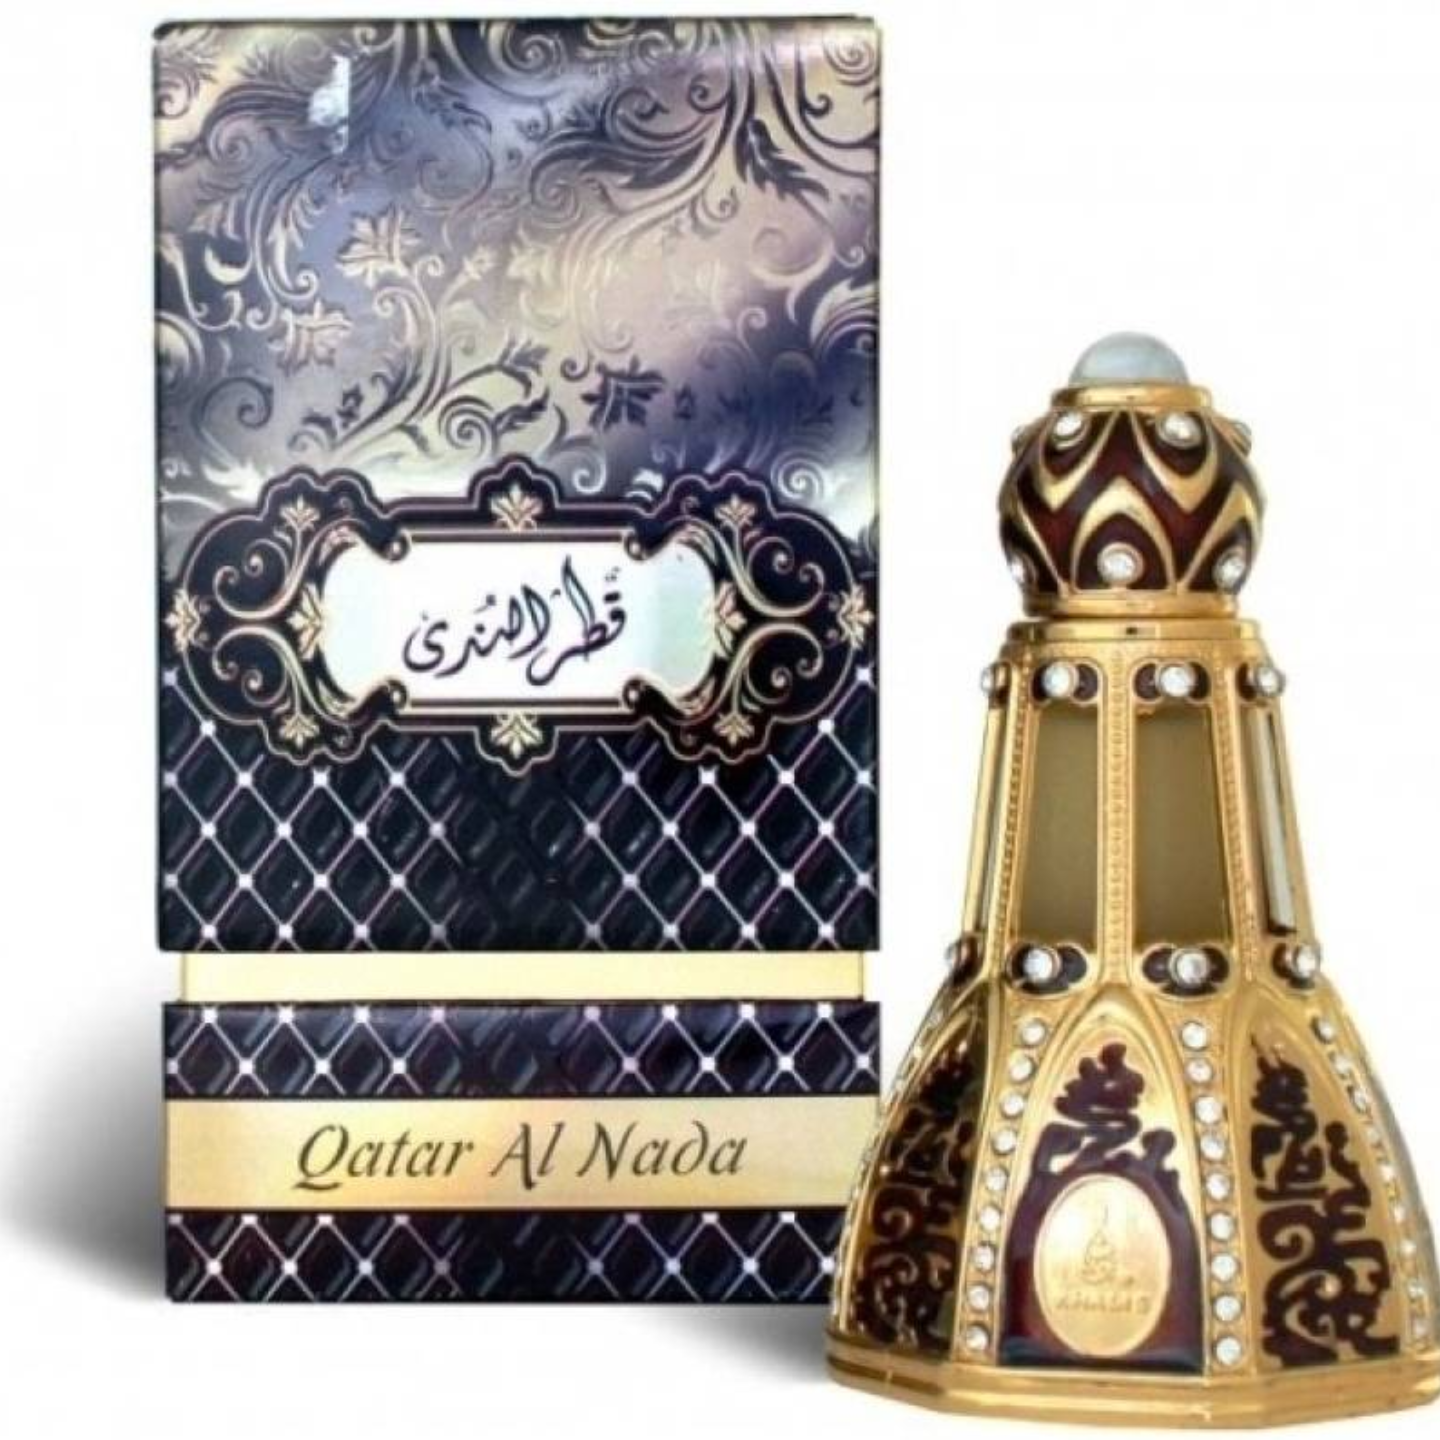 QATAR AL NADA ATTAR BY KHALIS